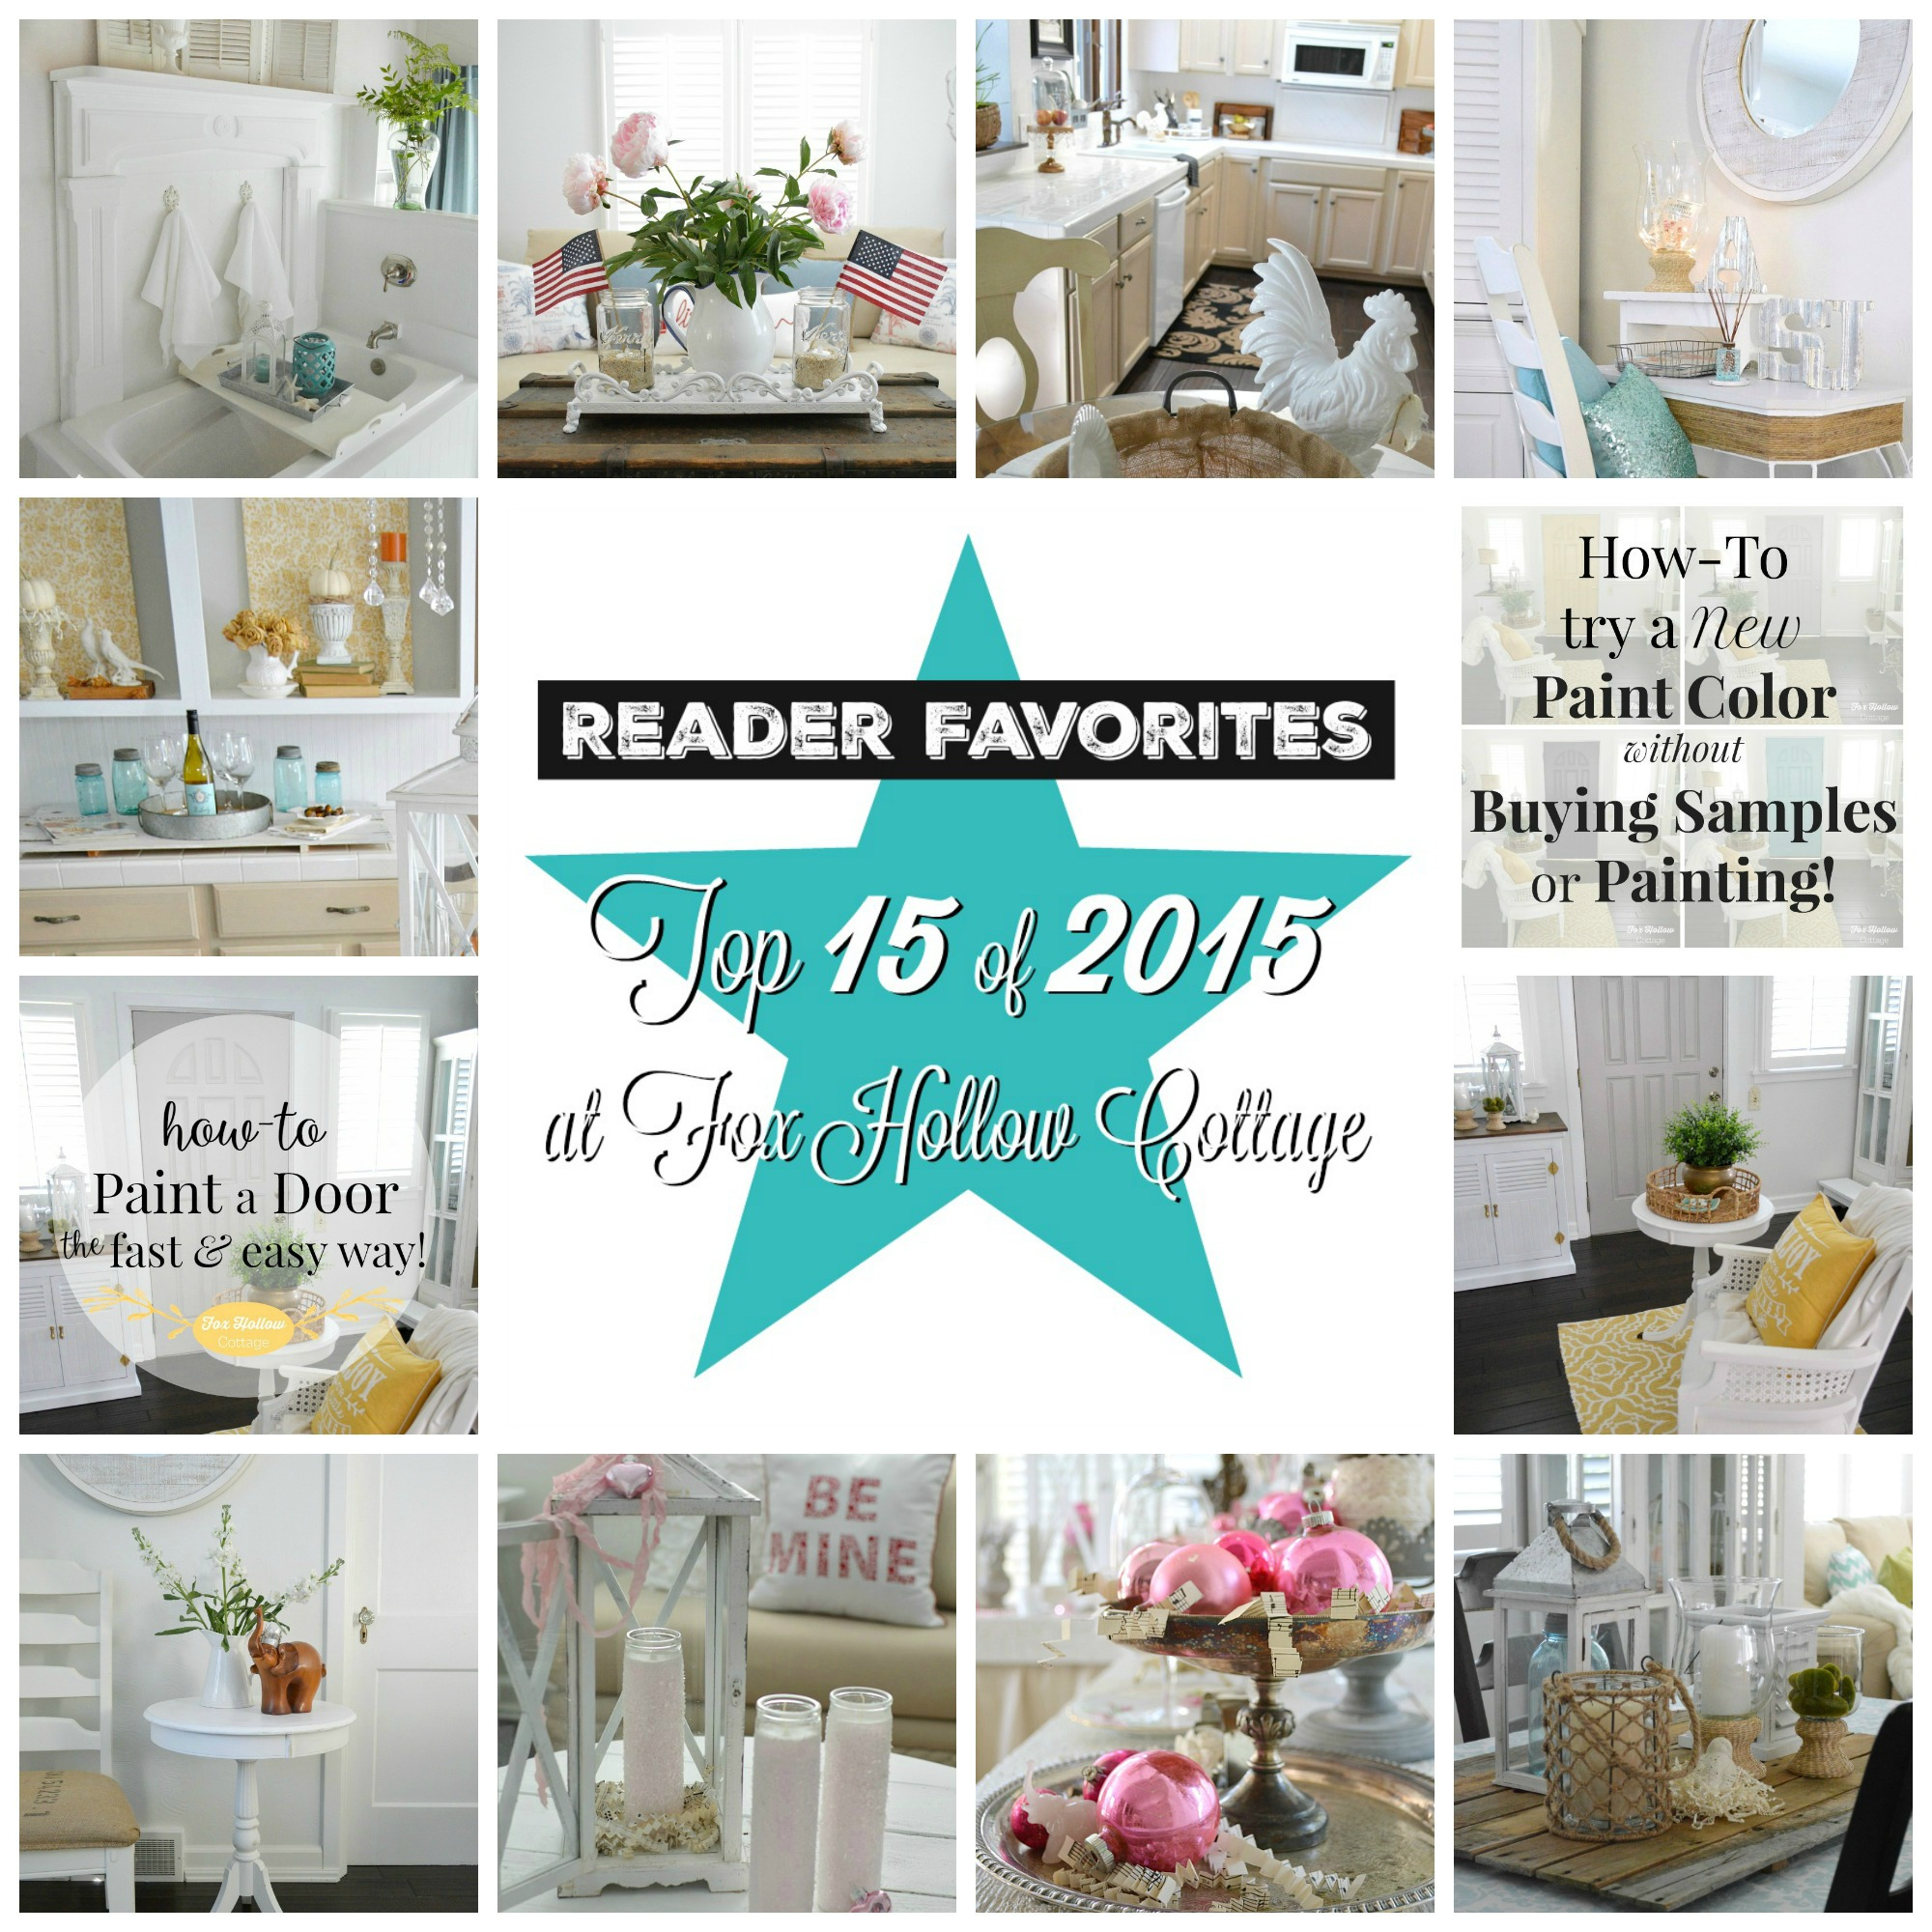 Home Design Ideas Build: Top 15 DIY Craft And Home Decorating Projects Of 2015